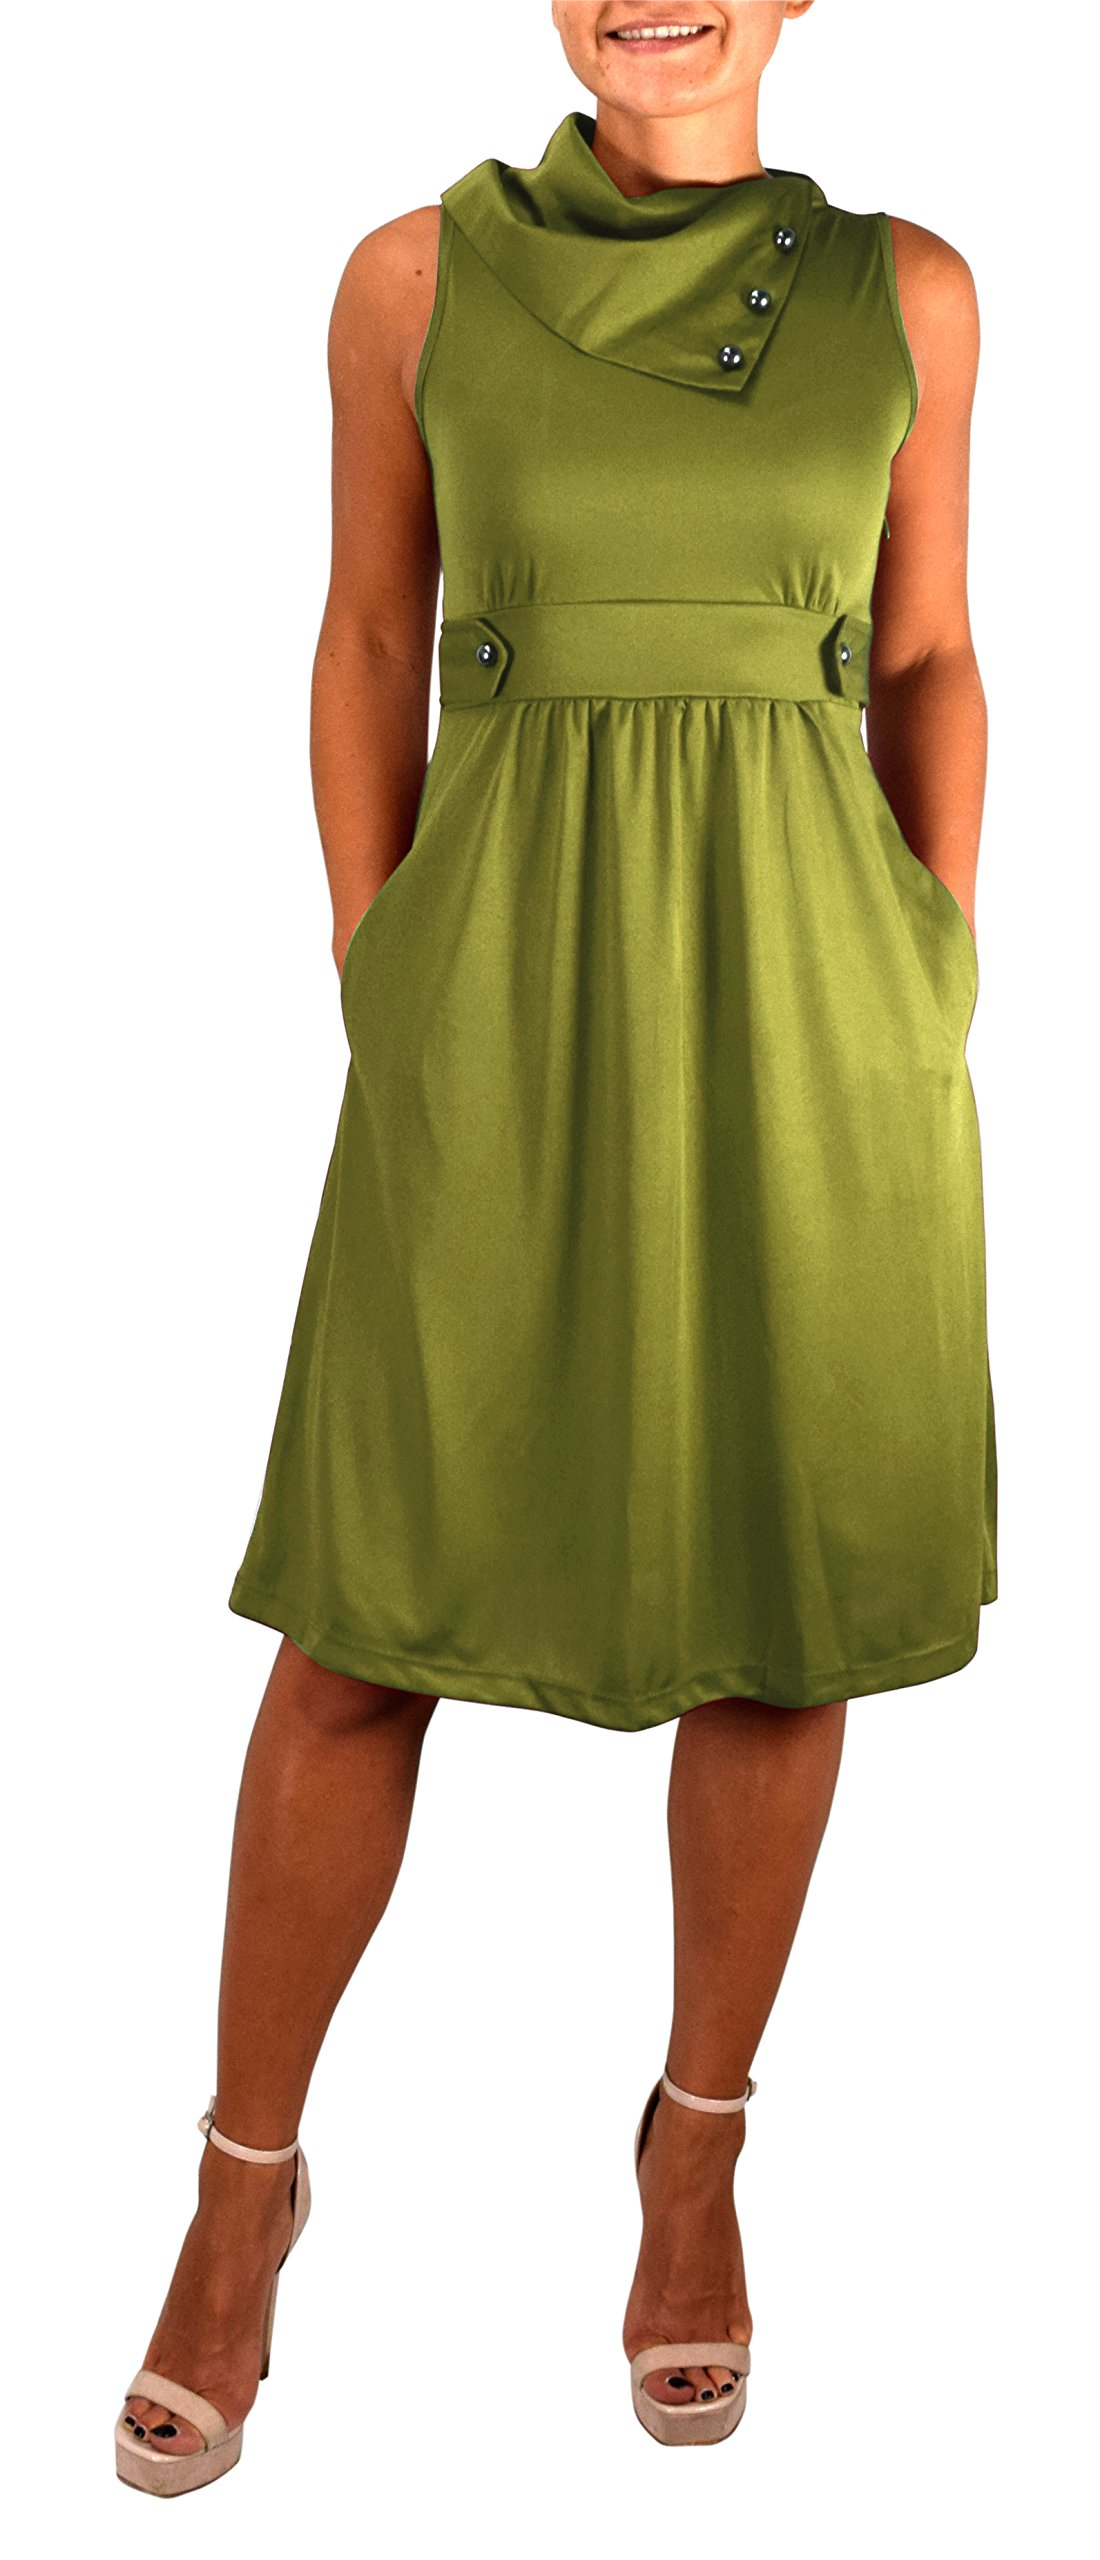 Available at Amazon: Peach Couture Women's Casual Sleeveless Classic Fold Over Collar A-Line Dress